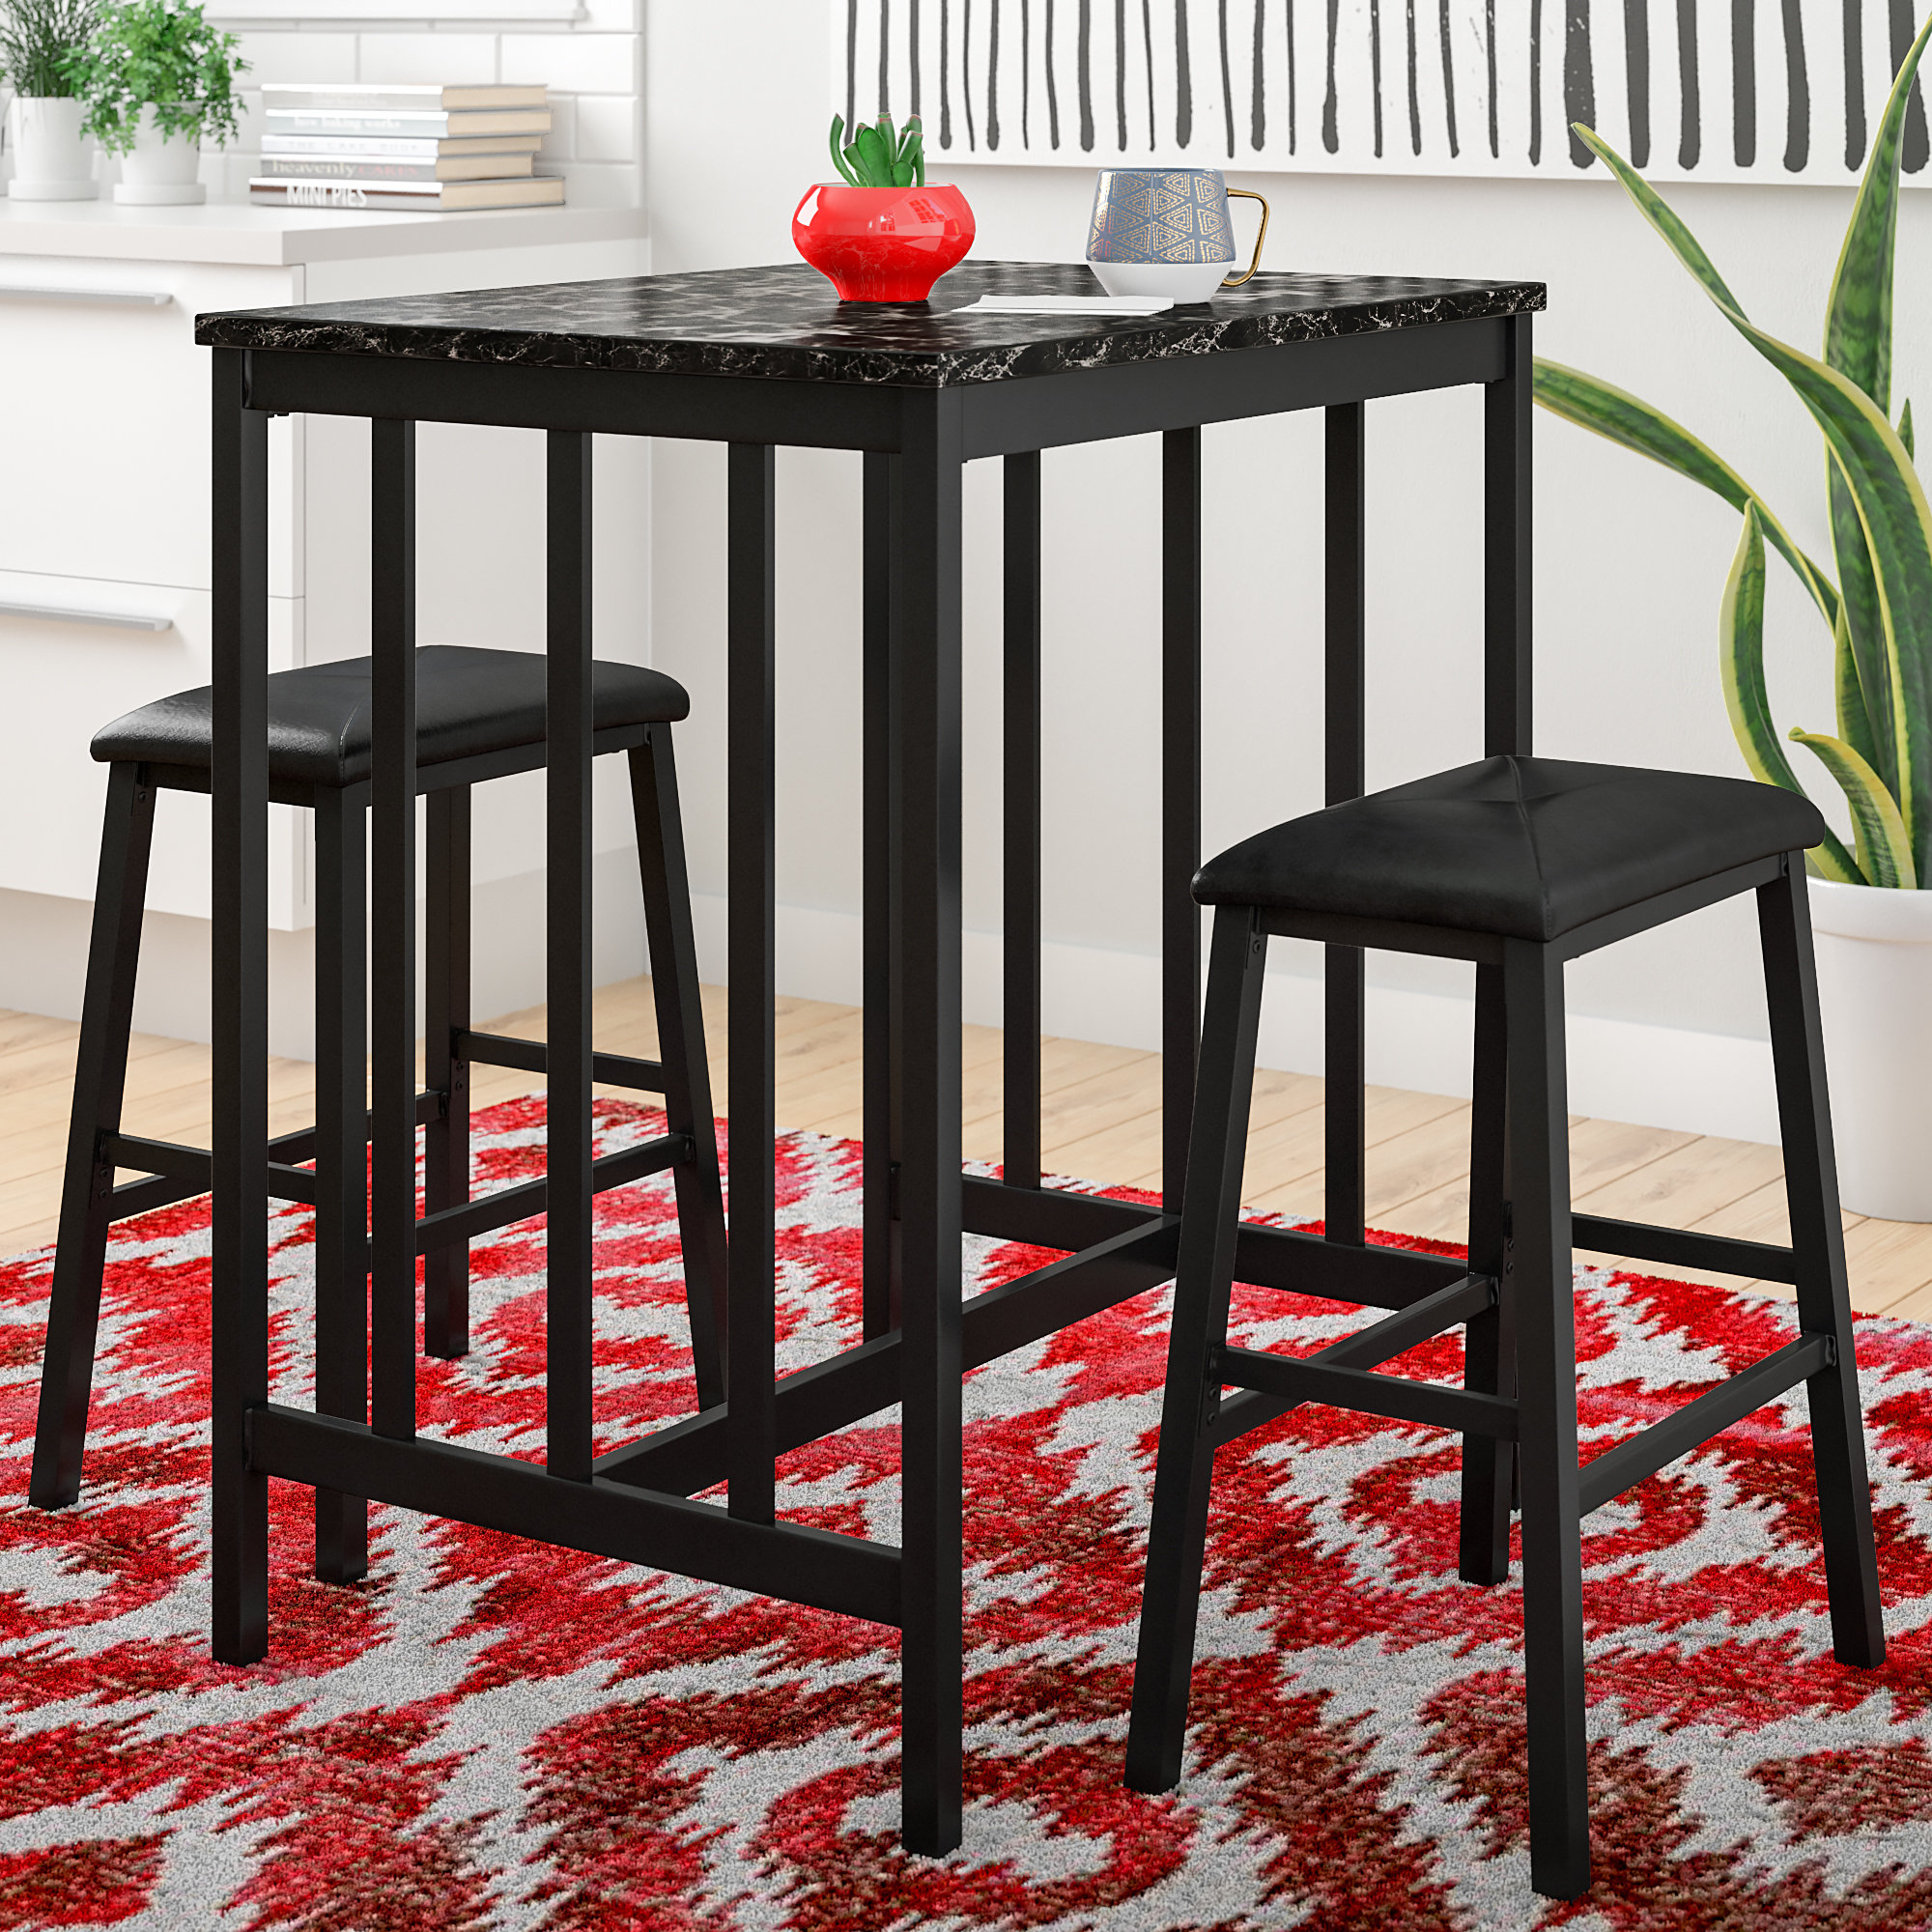 Latest Miskell 3 Piece Dining Sets With Regard To Andover Mills Della 3 Piece Pub Table Set & Reviews (View 7 of 20)